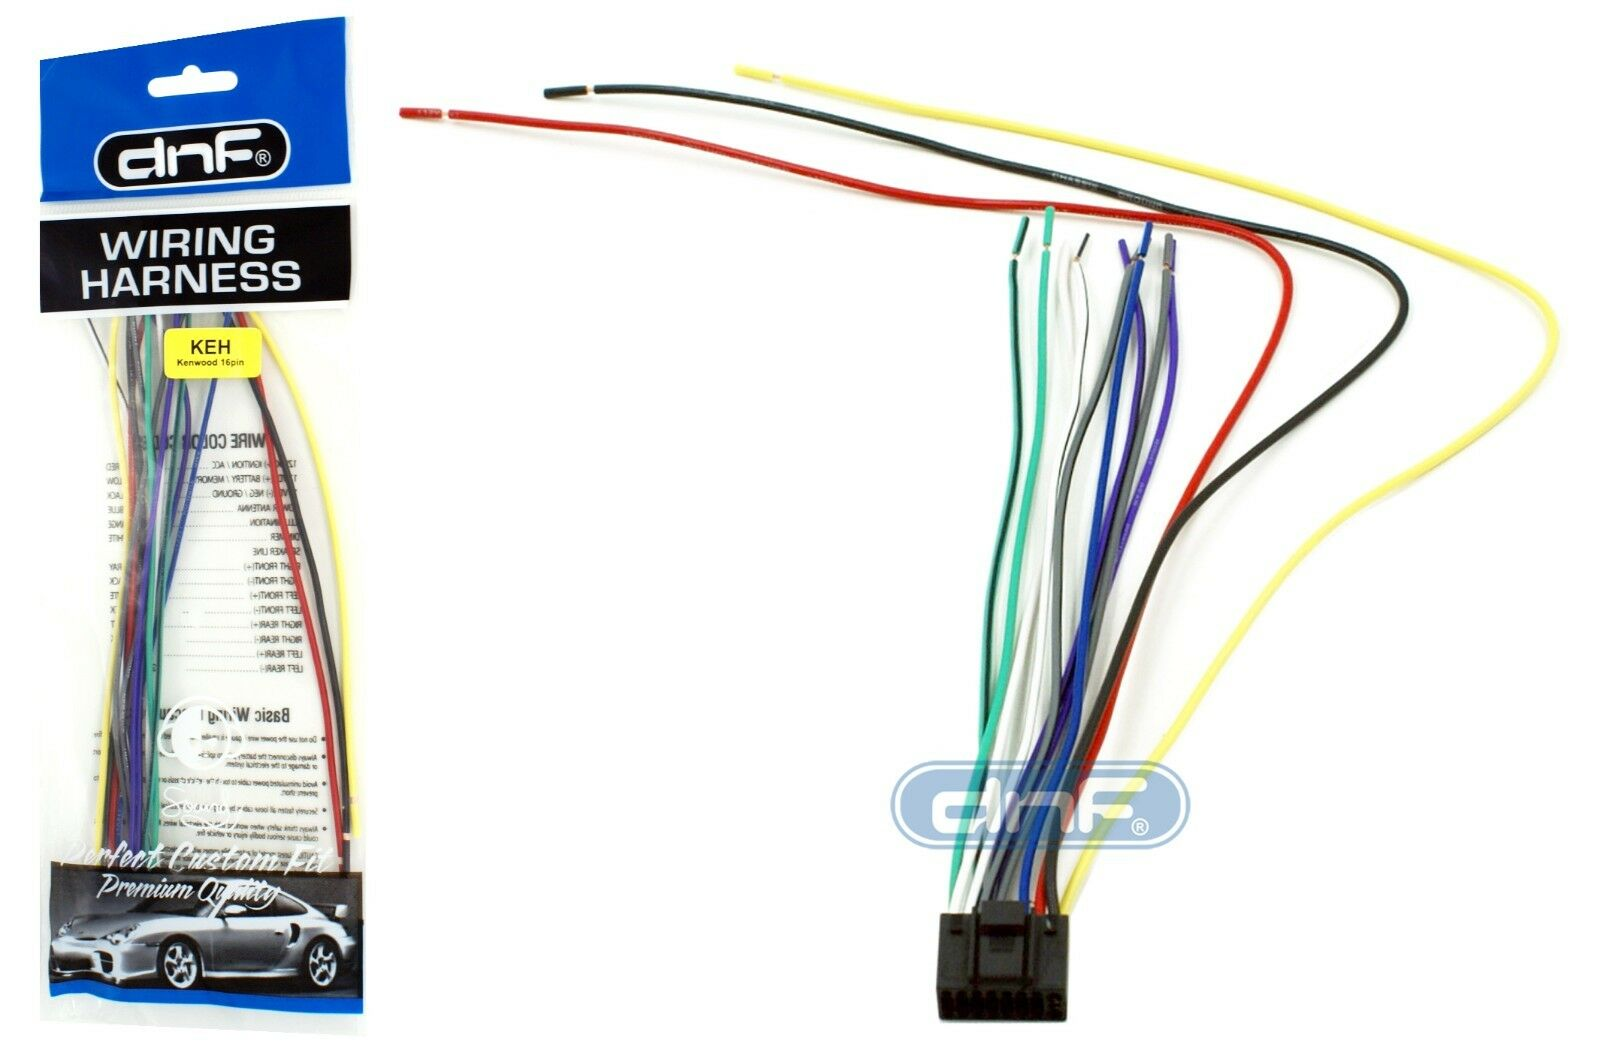 Kenwood Kdc 215s Car Stereo Wiring Diagram - Wiring Diagram G11 on ford aftermarket kenwood stereo diagram, kenwood kdc 128 wiring harness, kenwood kdc mp342u wiring harness, kenwood kdc 210u wiring diagrams, kenwood kdc 200u wiring-diagram, kenwood kdc x591 wire diagram, kenwood kdc-248u wiring-diagram, kenwood stereo wiring, kenwood model kdc wiring-diagram, kenwood kdc 400u wiring-diagram,